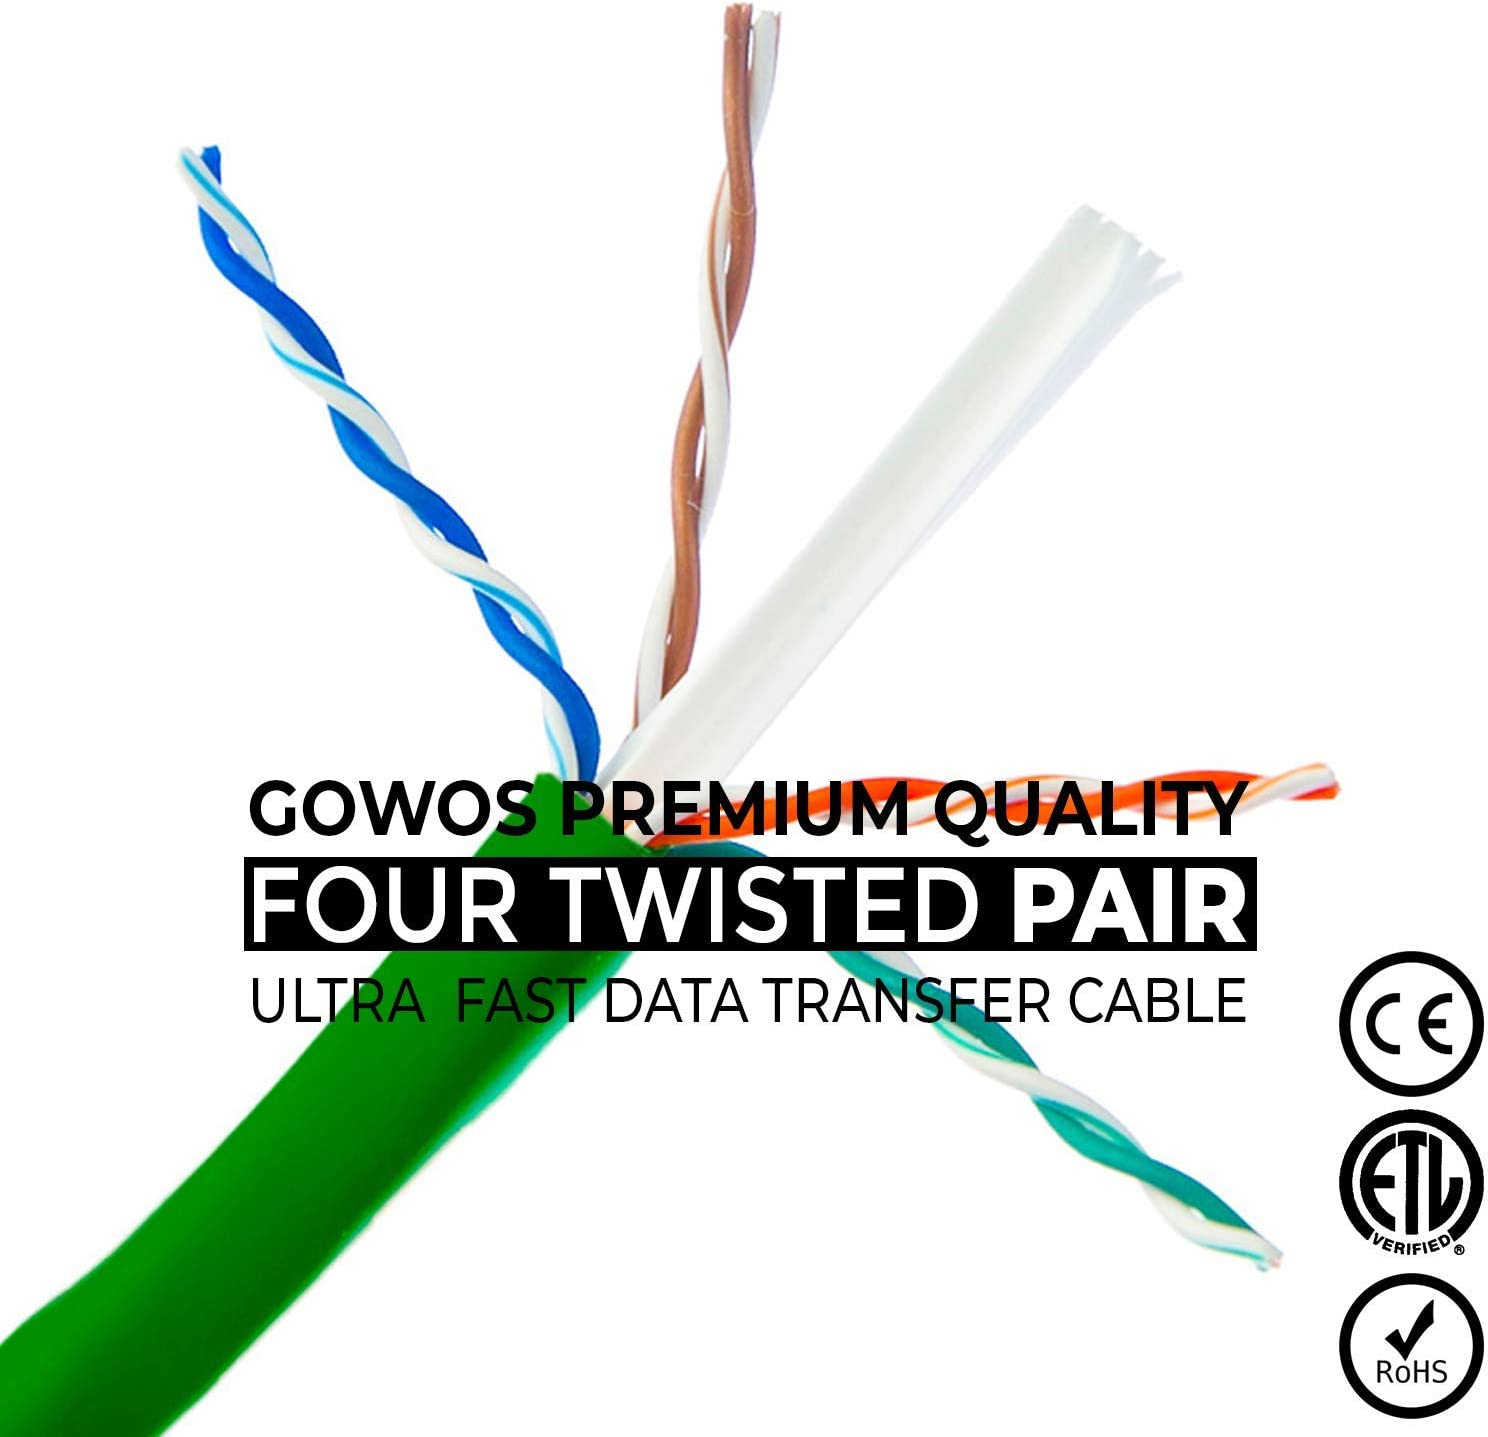 Cat5e Ethernet Cable Computer Network Cable with Snagless Connector UTP GOWOS 10-Pack 1 Feet - Yellow RJ45 10Gbps High Speed LAN Internet Patch Cord Available in 28 Lengths and 10 Colors